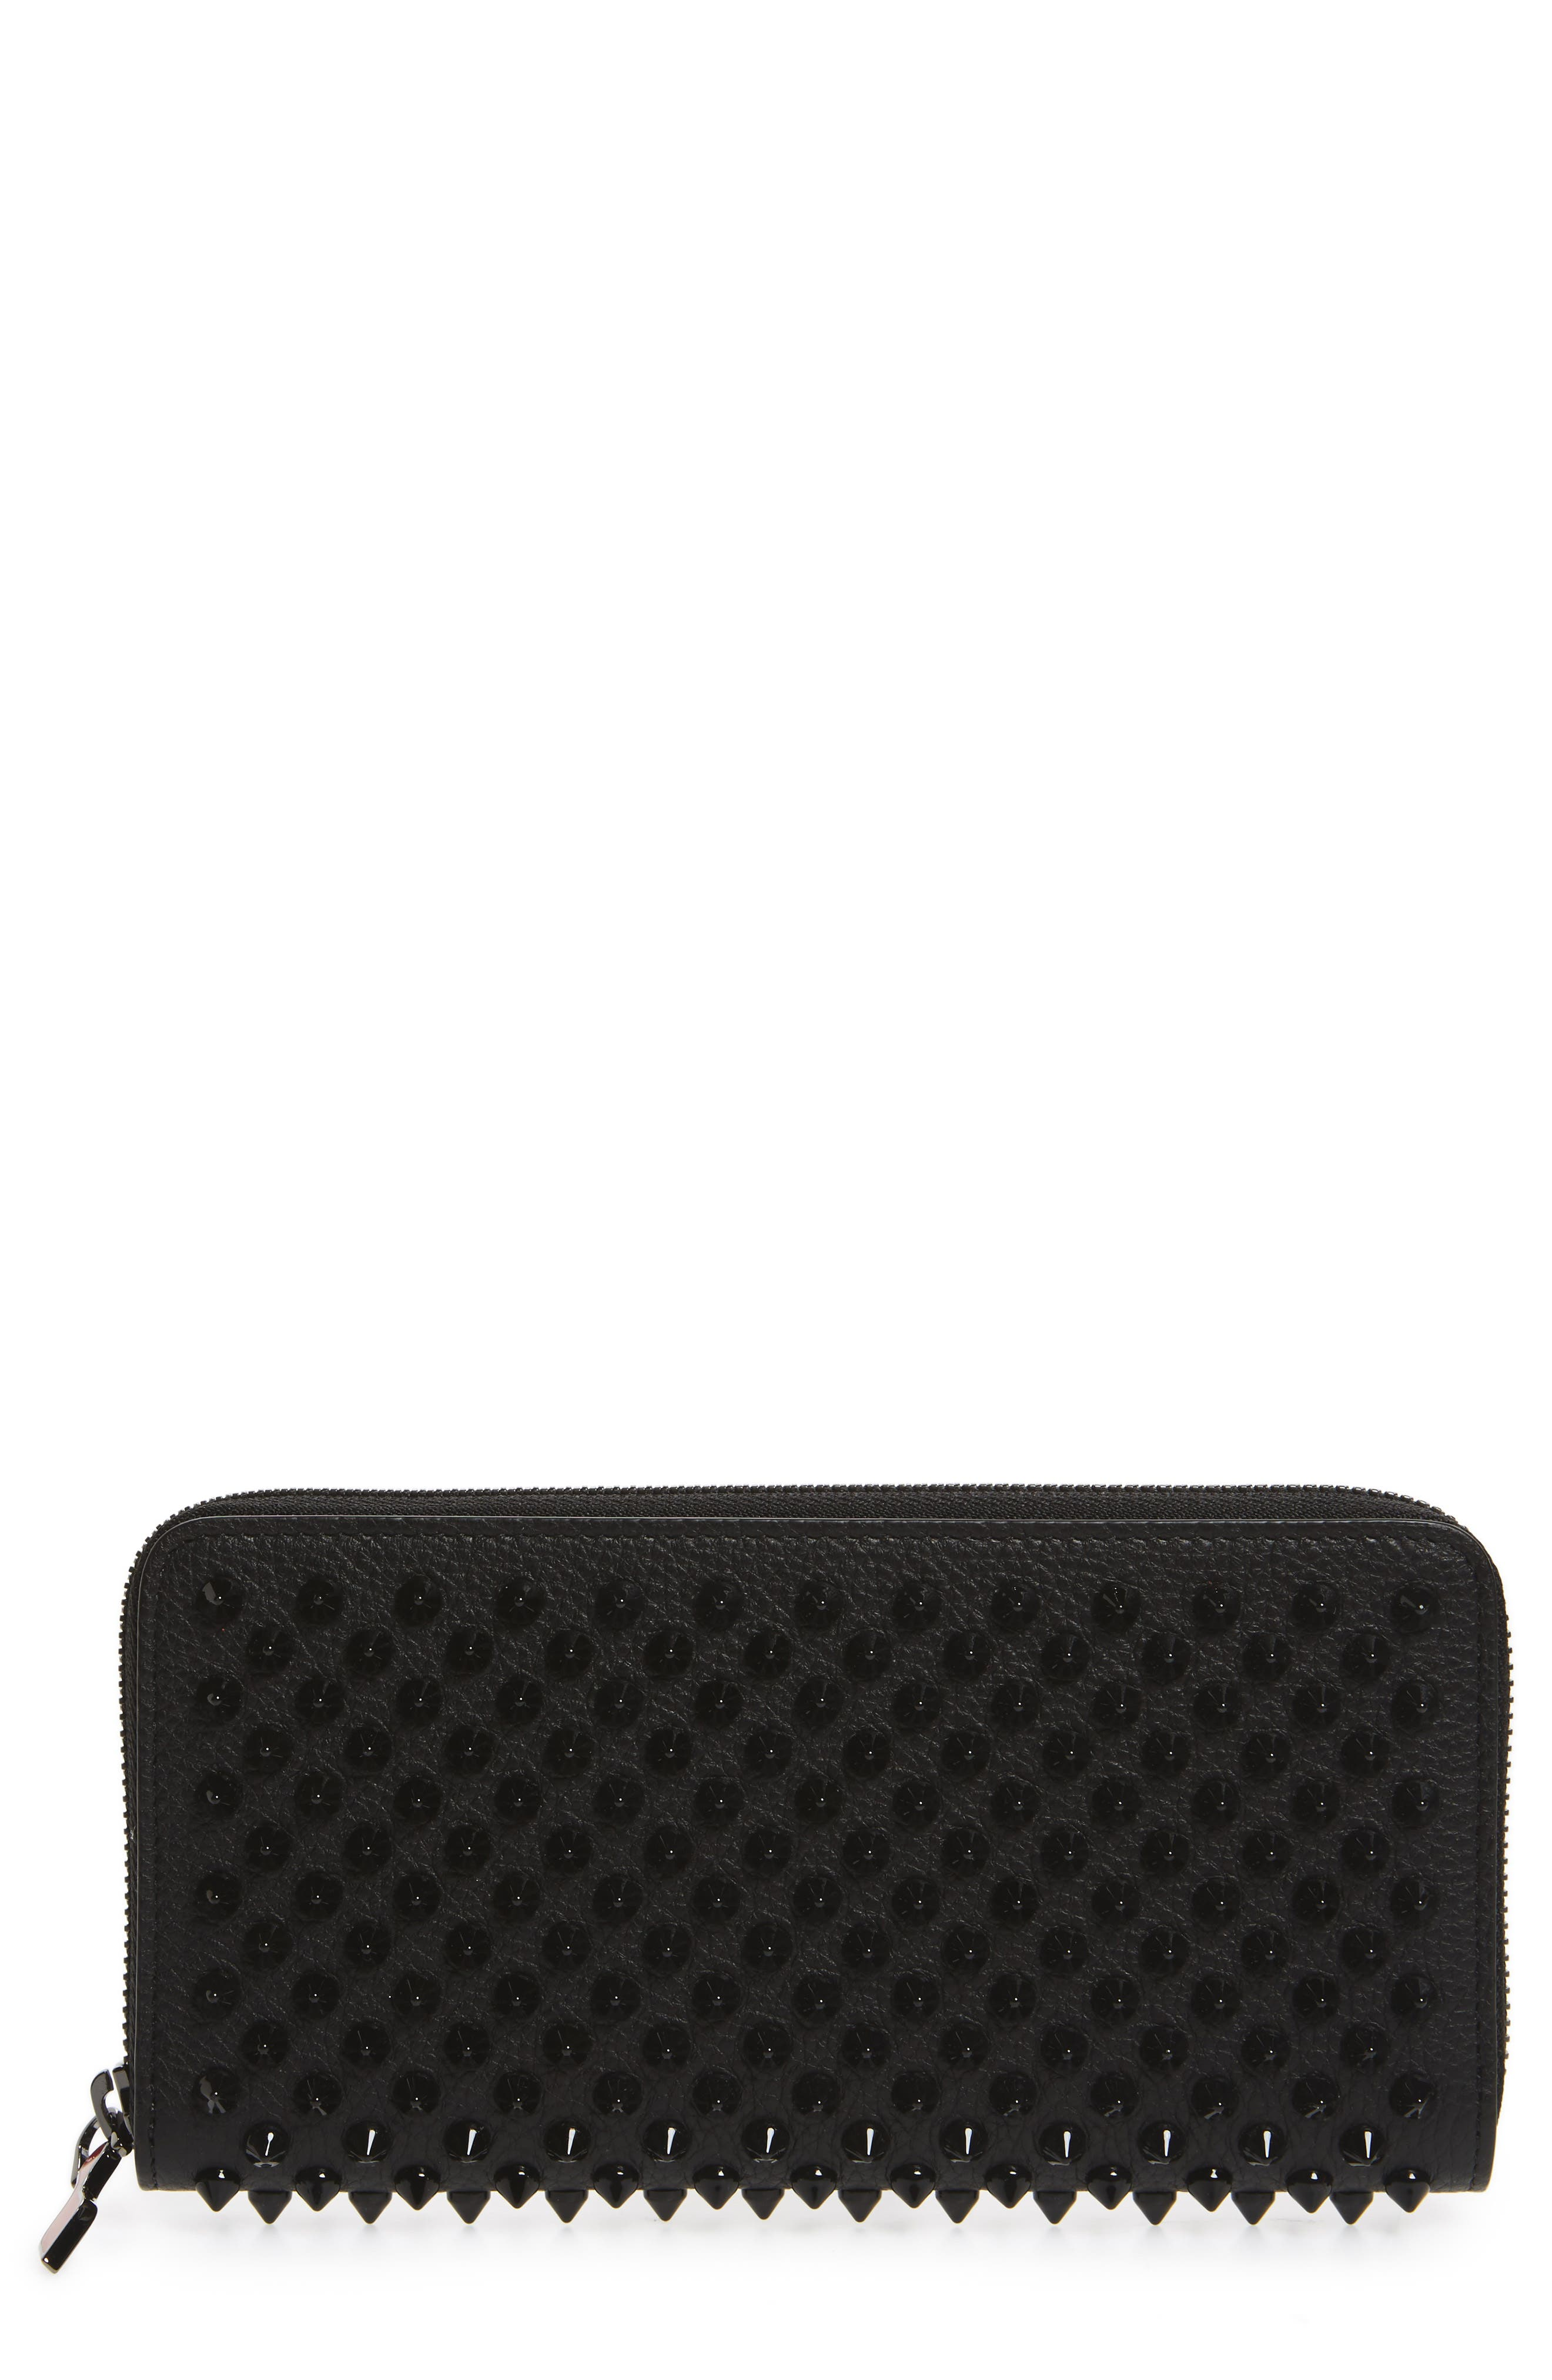 Panettone Spiked Calfskin Wallet,                             Main thumbnail 1, color,                             BLACK/ BLACK